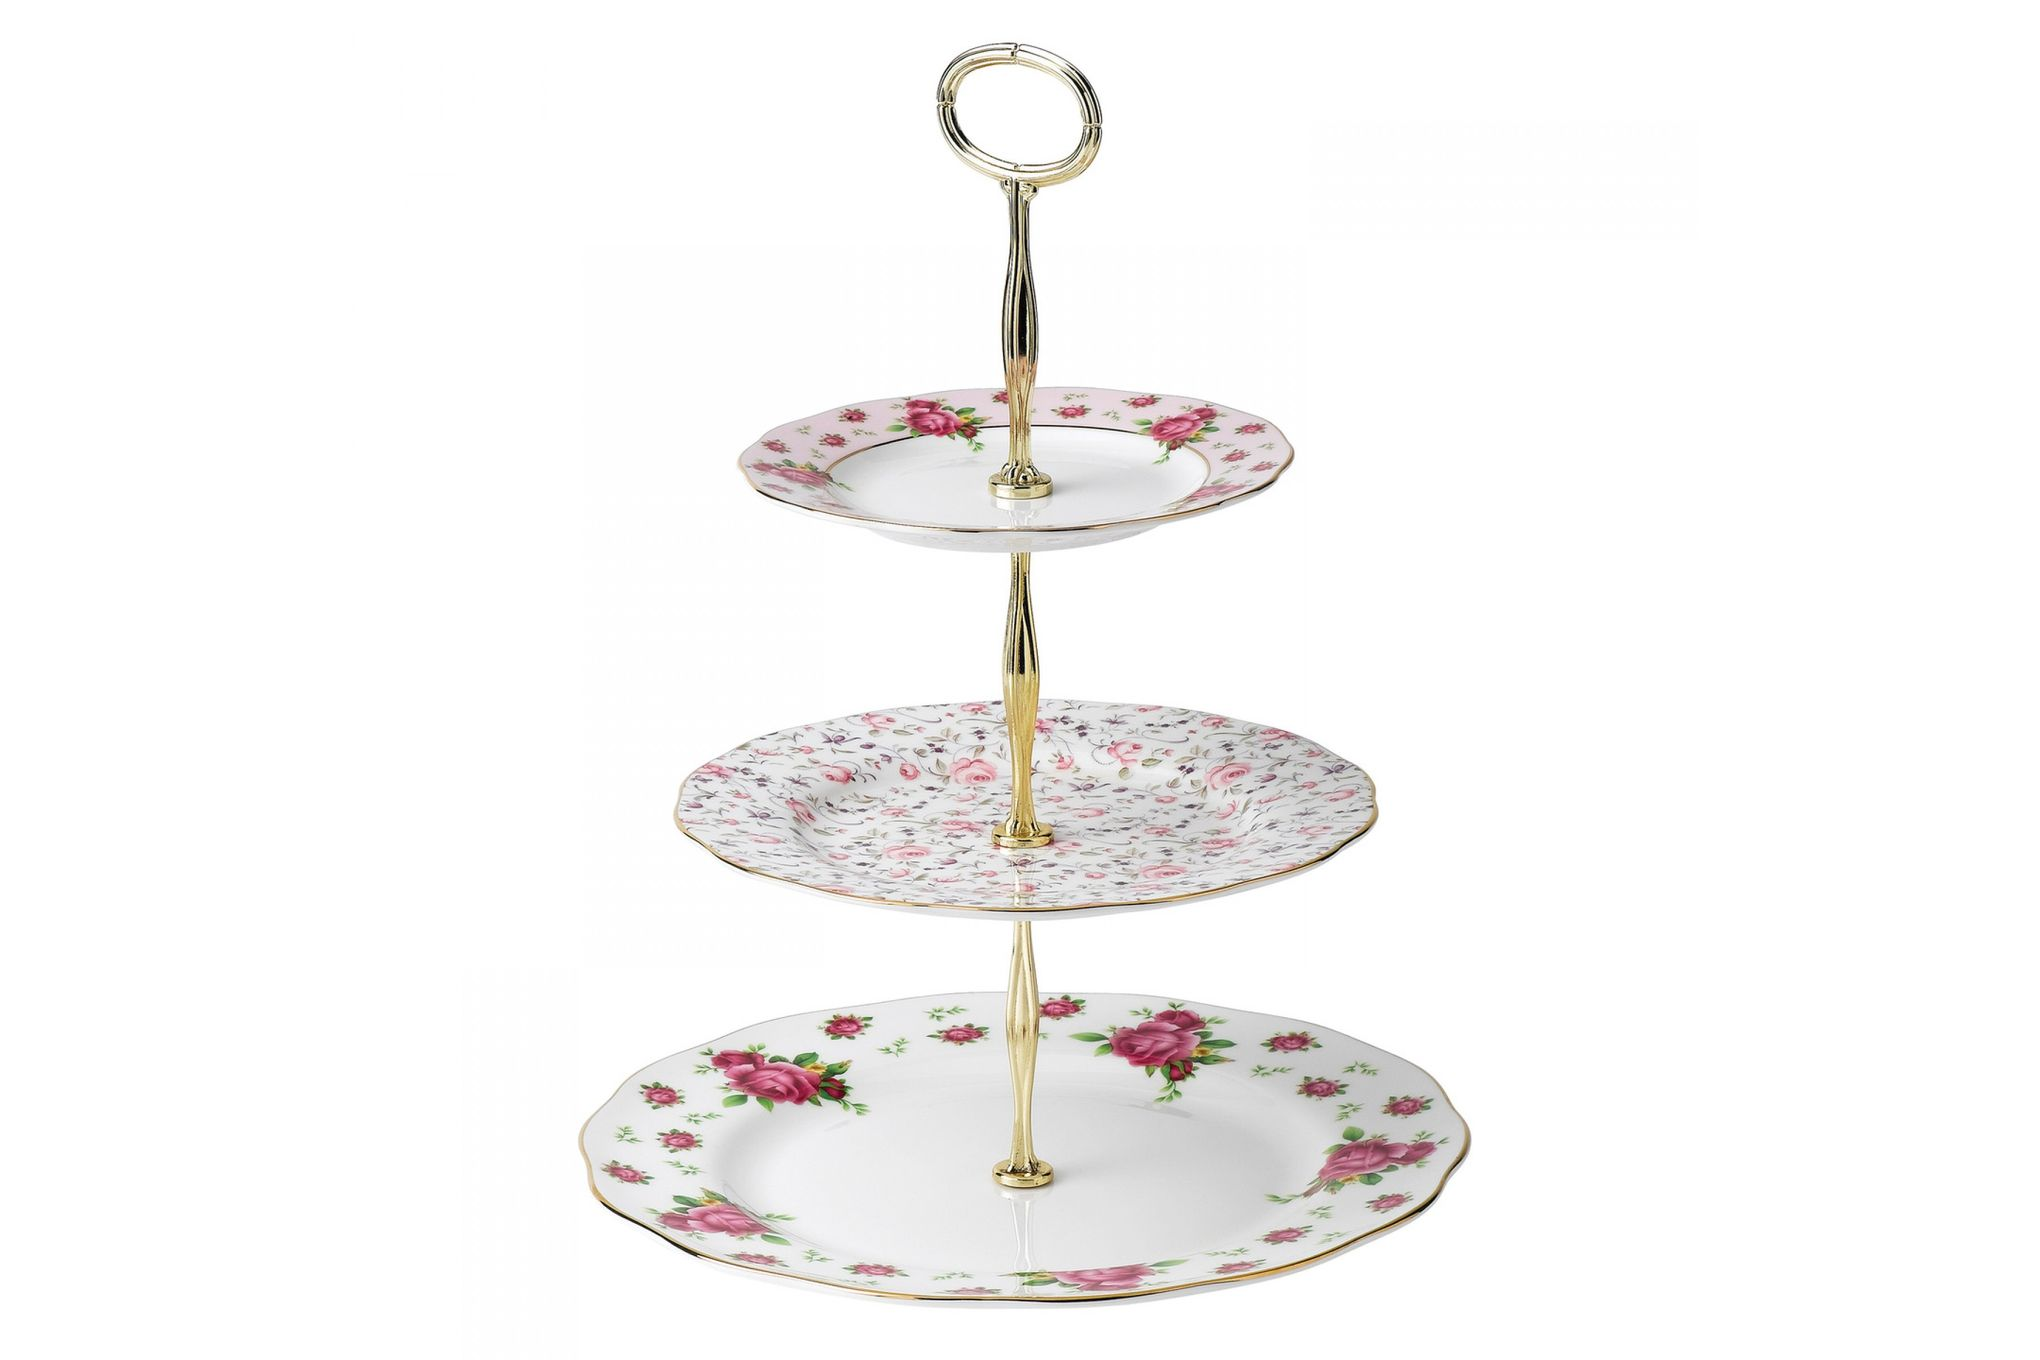 Royal Albert New Country Roses White 3 Tier Cake Stand Boxed thumb 1